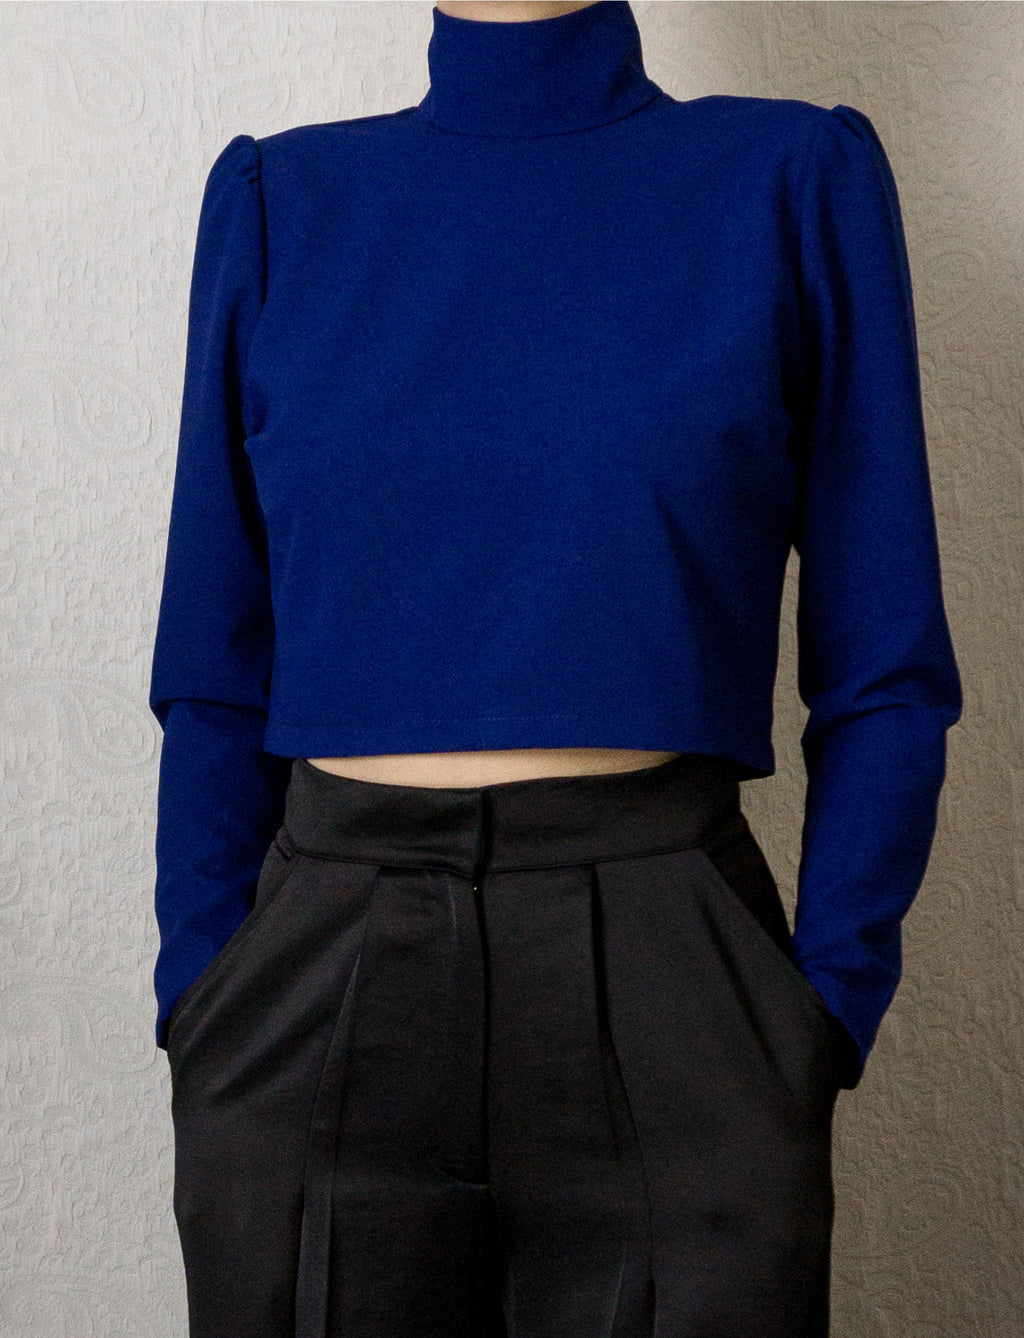 Top court bleu à col montant et manches bouffantes ~ Blue crop top with high collar and puffed sleeves